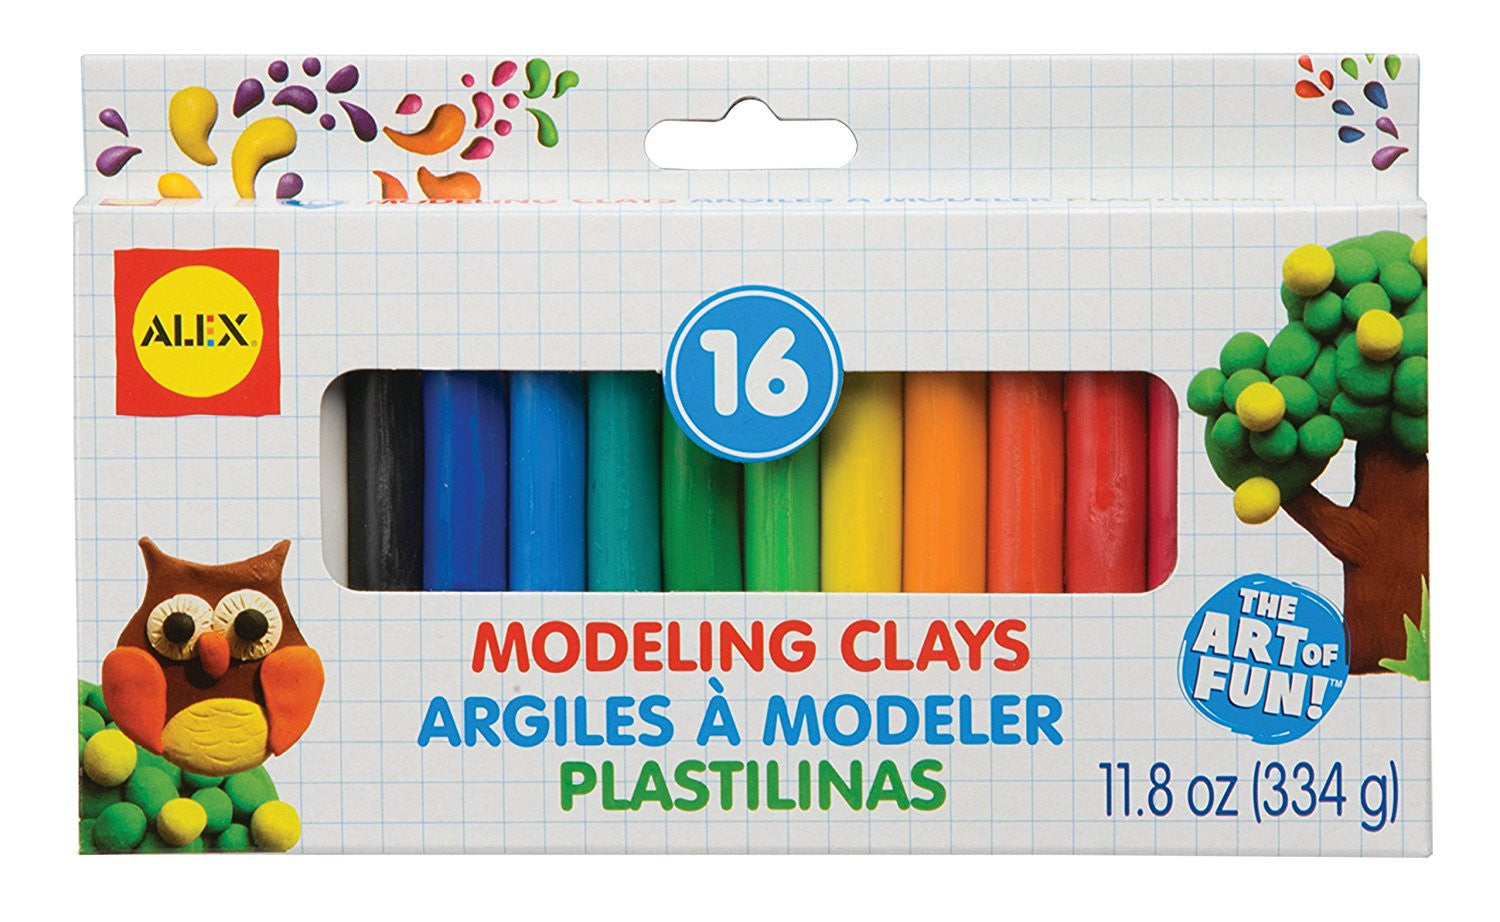 MODELING CLAY (16)